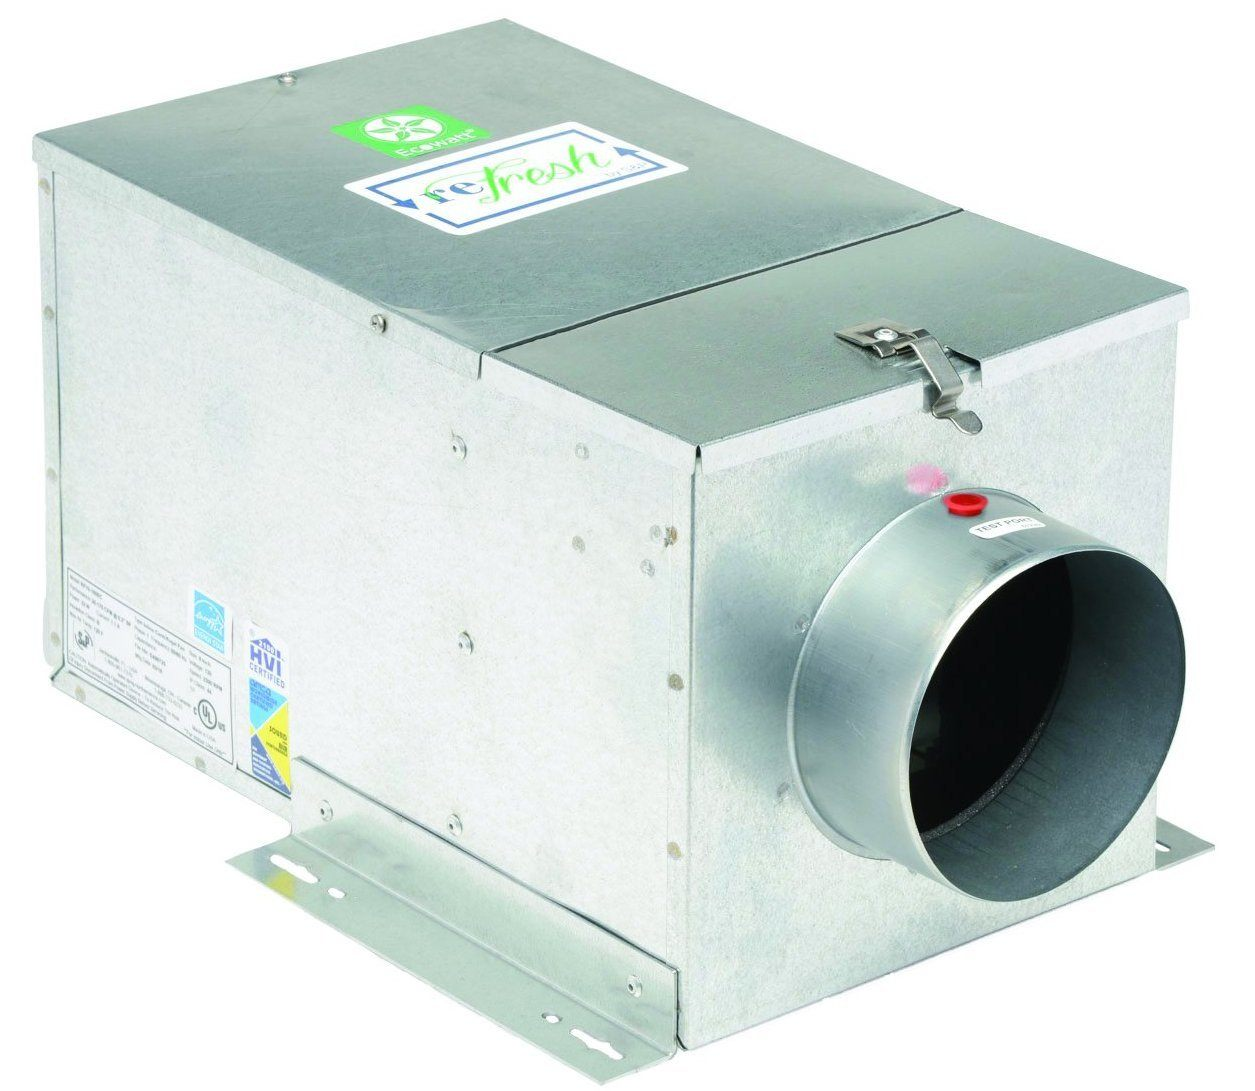 whole-house-ventilation-exhaust-fans-balanced-ventilation-systems.jpg